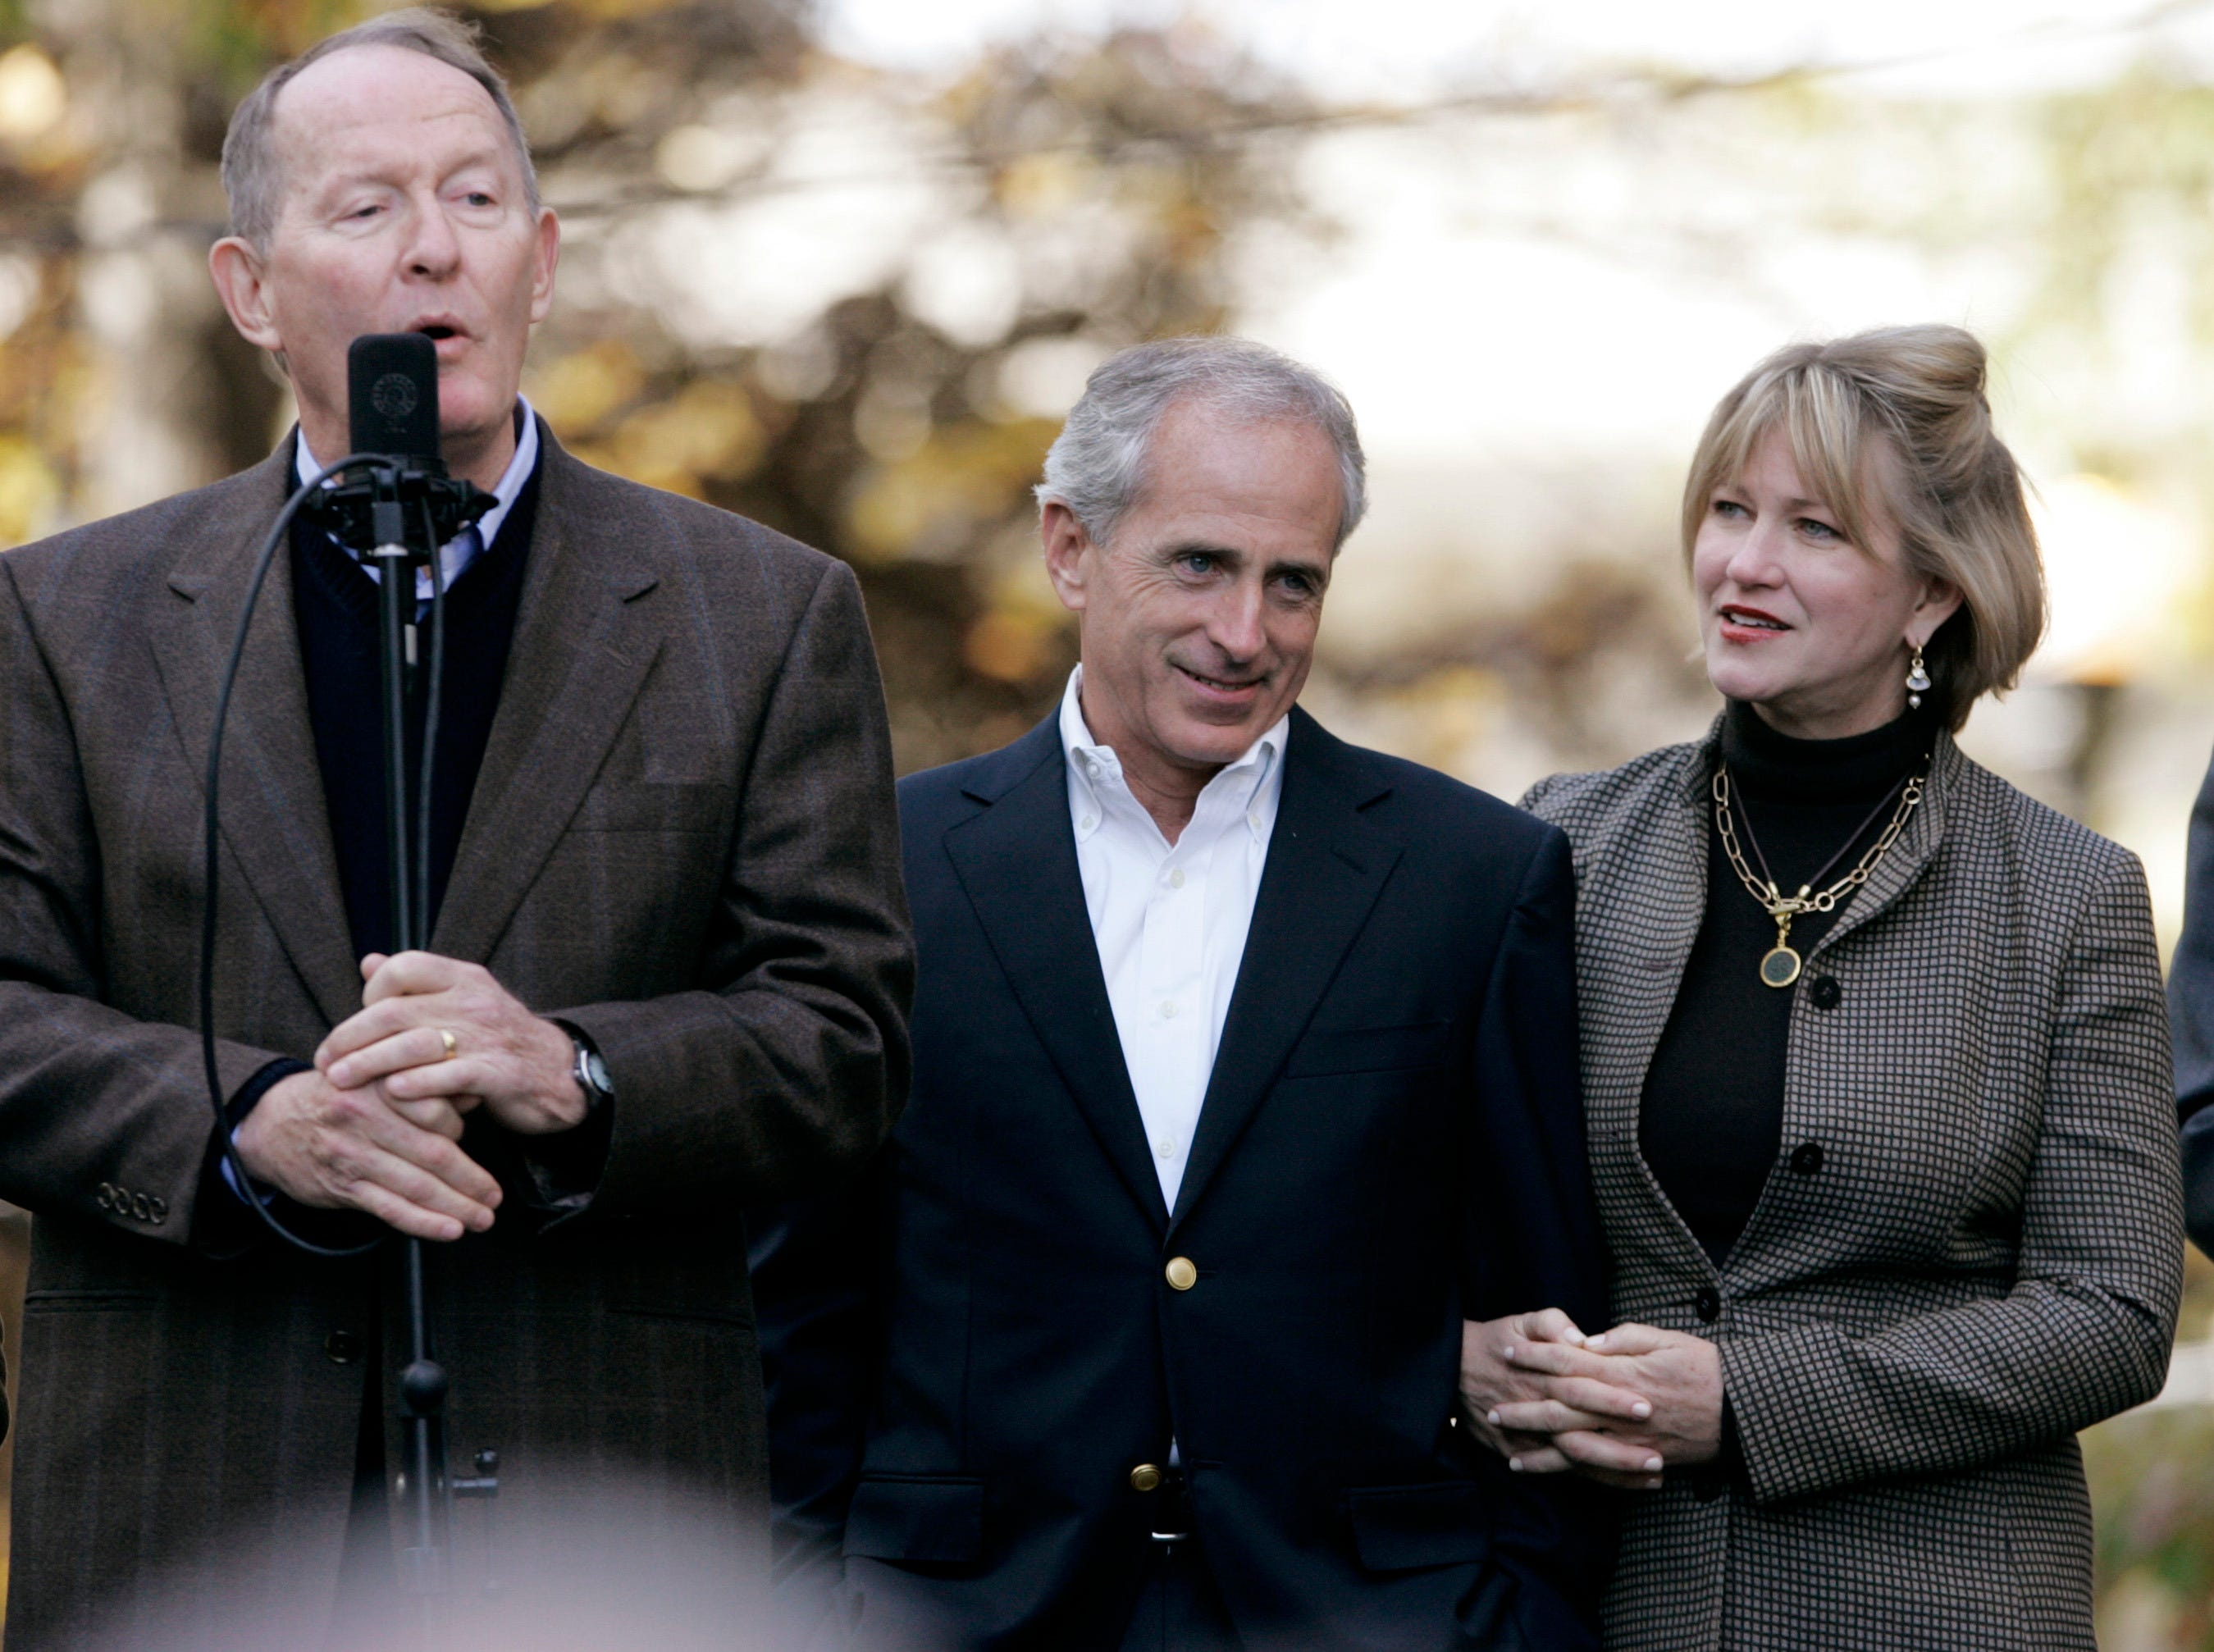 Sen. Lamar Alexander, R-Tenn., left, campaigns for Republican Bob Corker, candidate for Senate, center, in Knoxville, Tenn., Monday, Nov. 6, 2006. With Corker is his wife, Elizabeth.